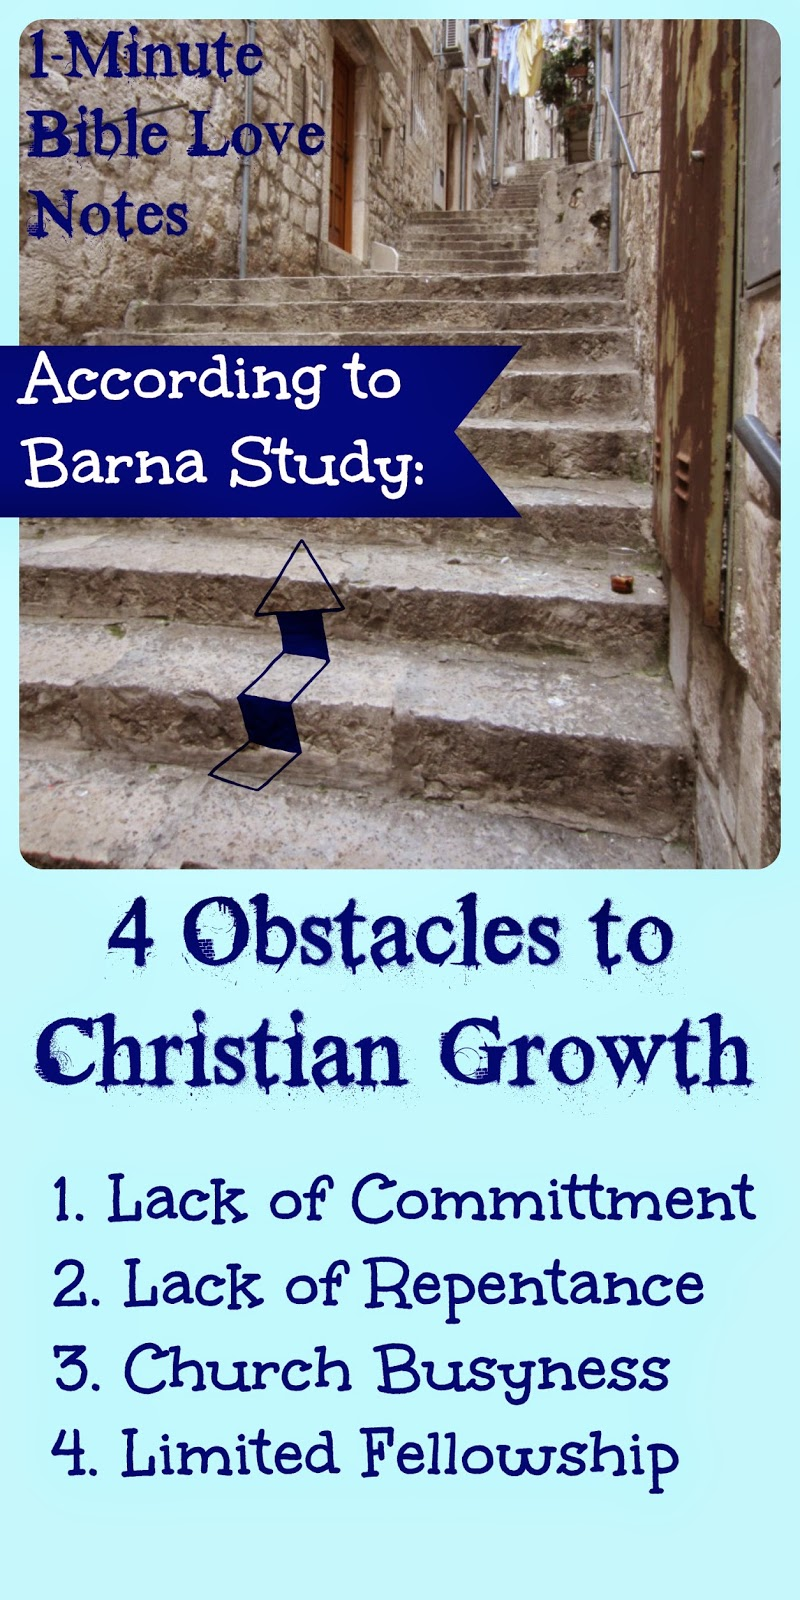 discipleship, Christian growth, Barna study